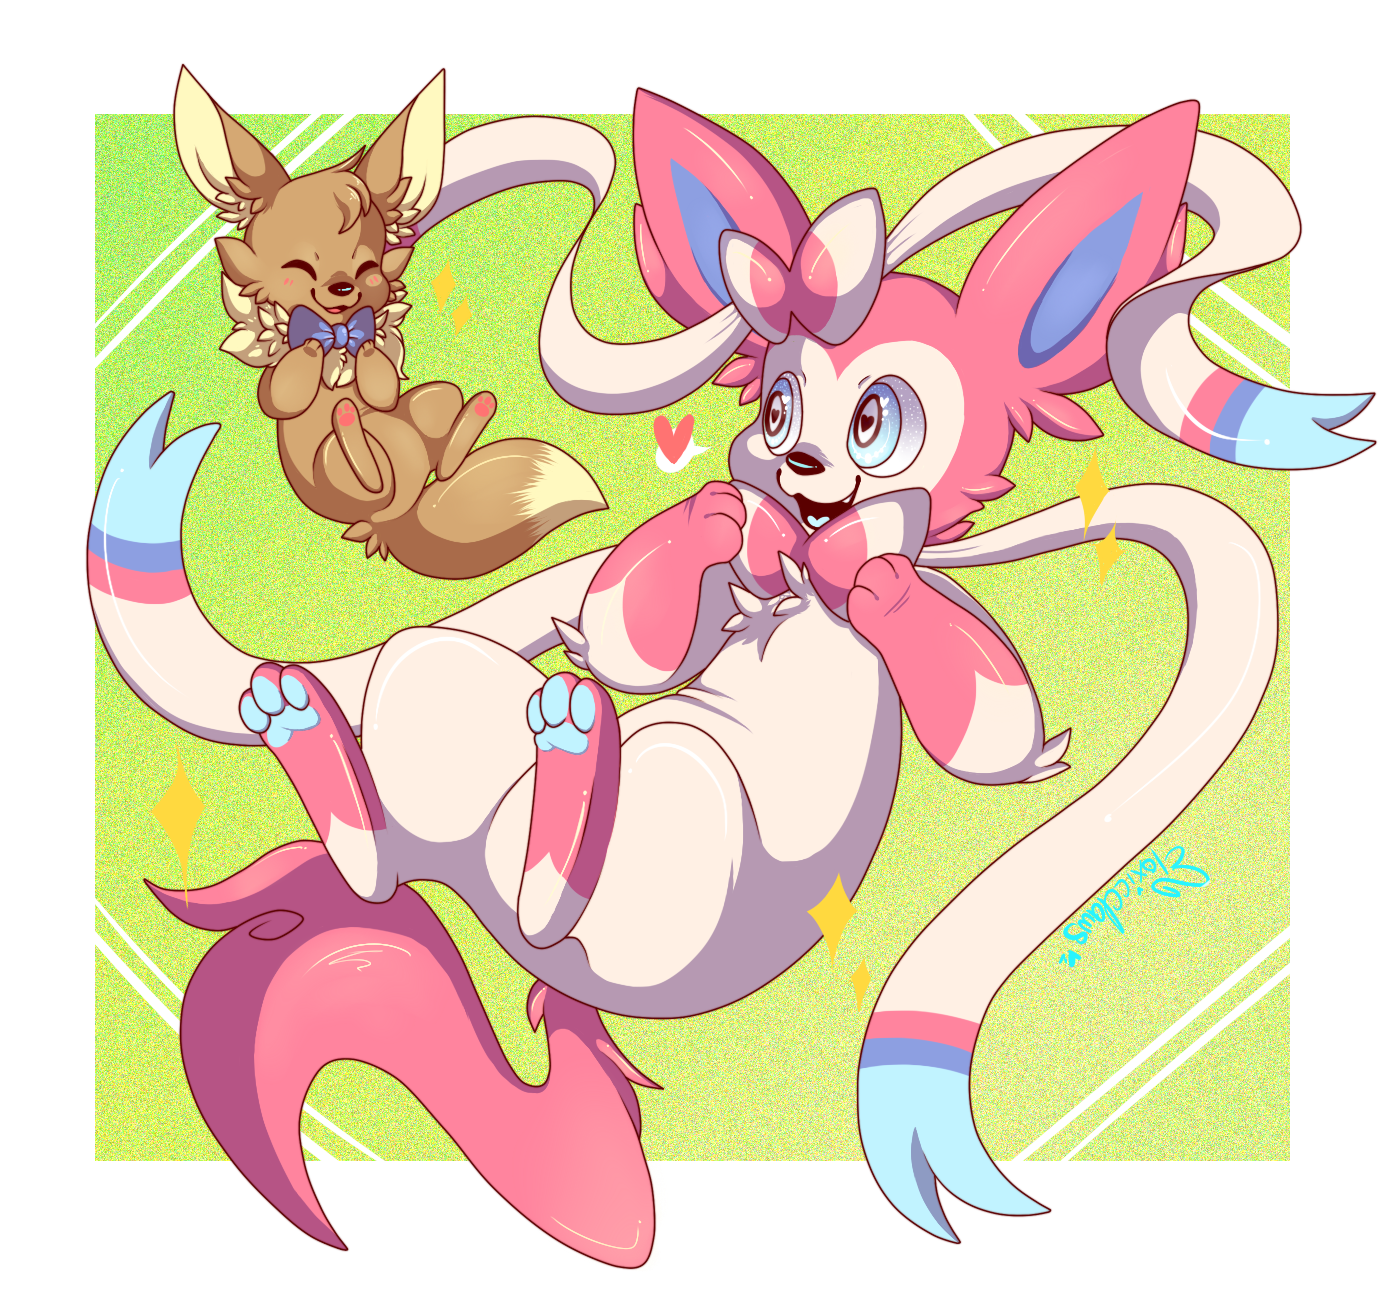 sylveon and eevee u2014 weasyl